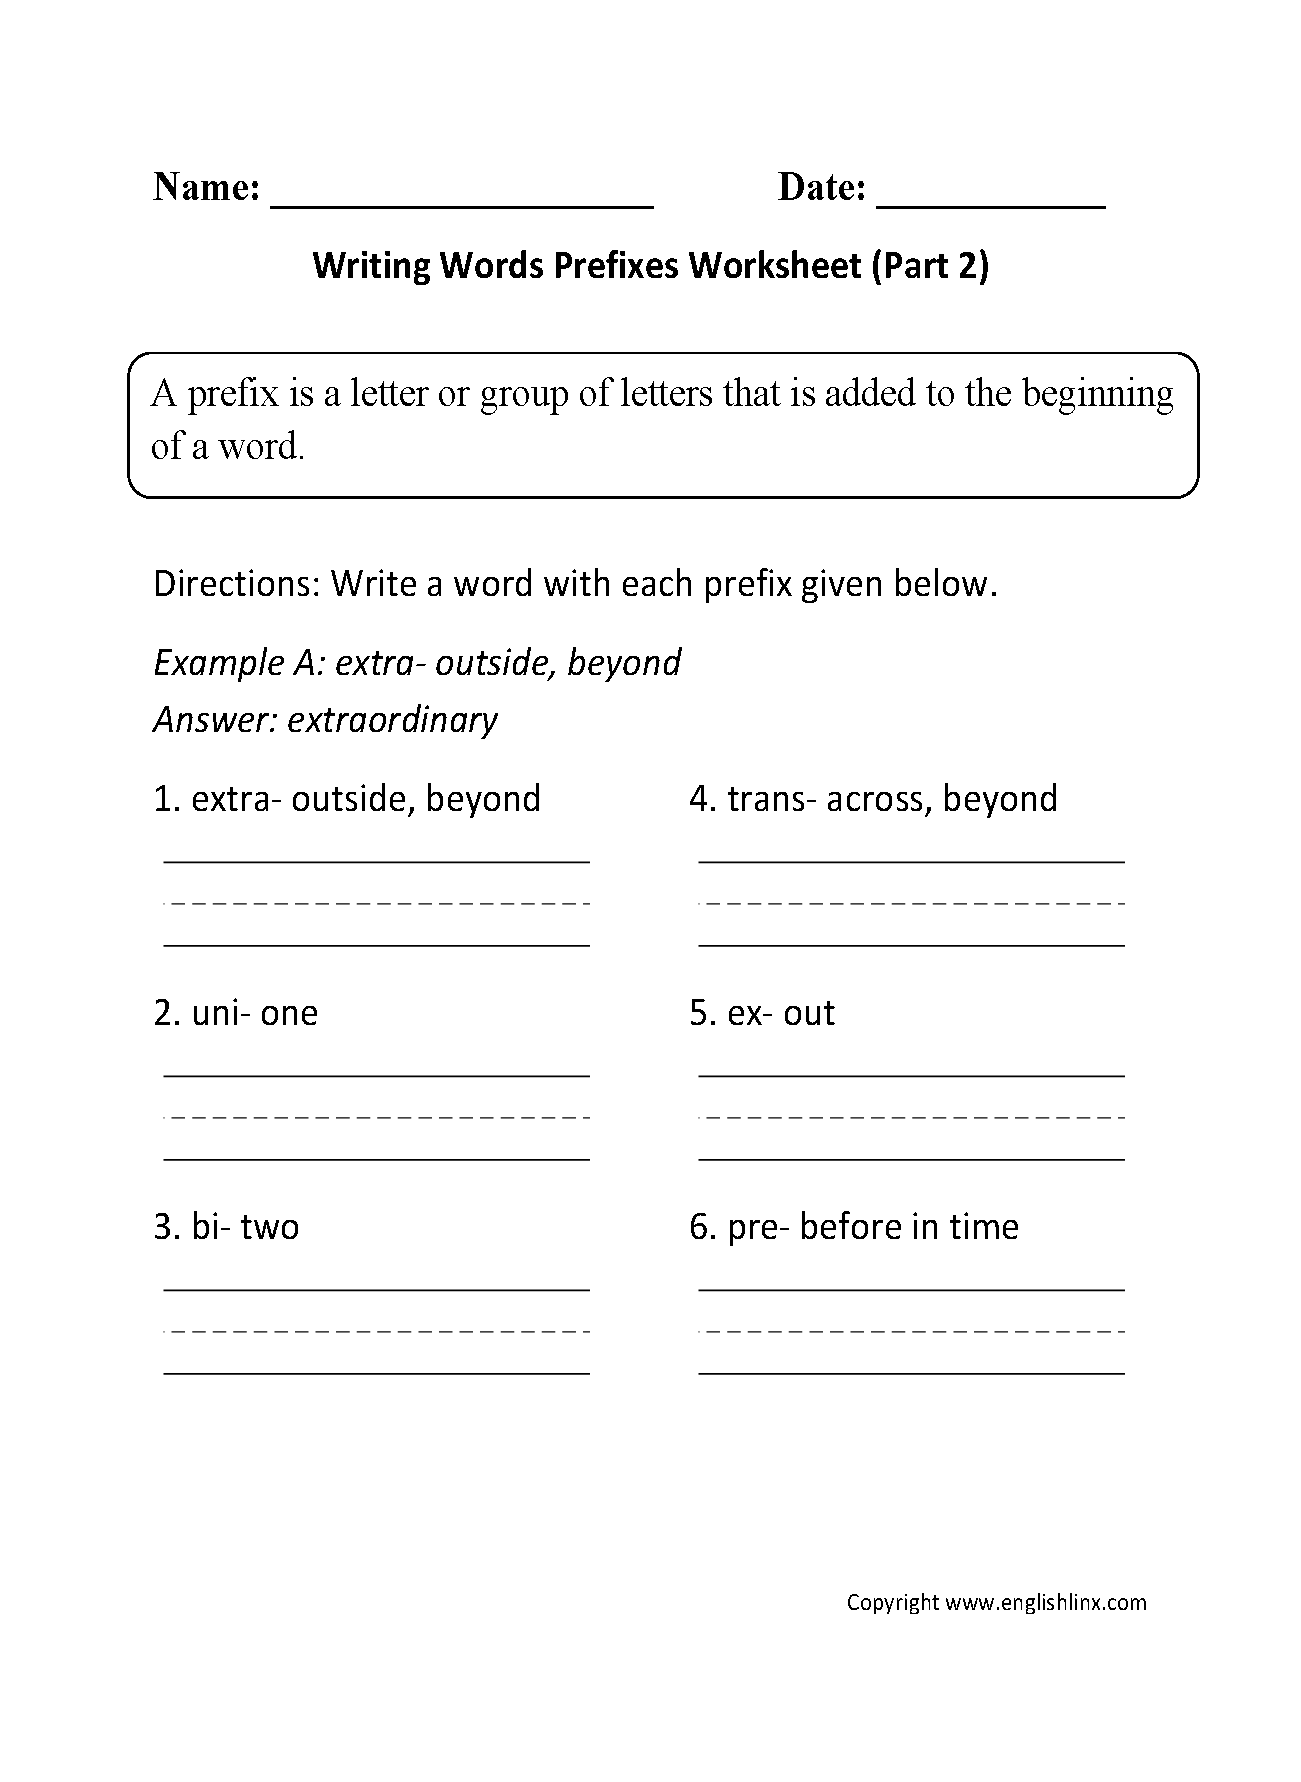 Writing Words Prefixes Worksheet Part 2